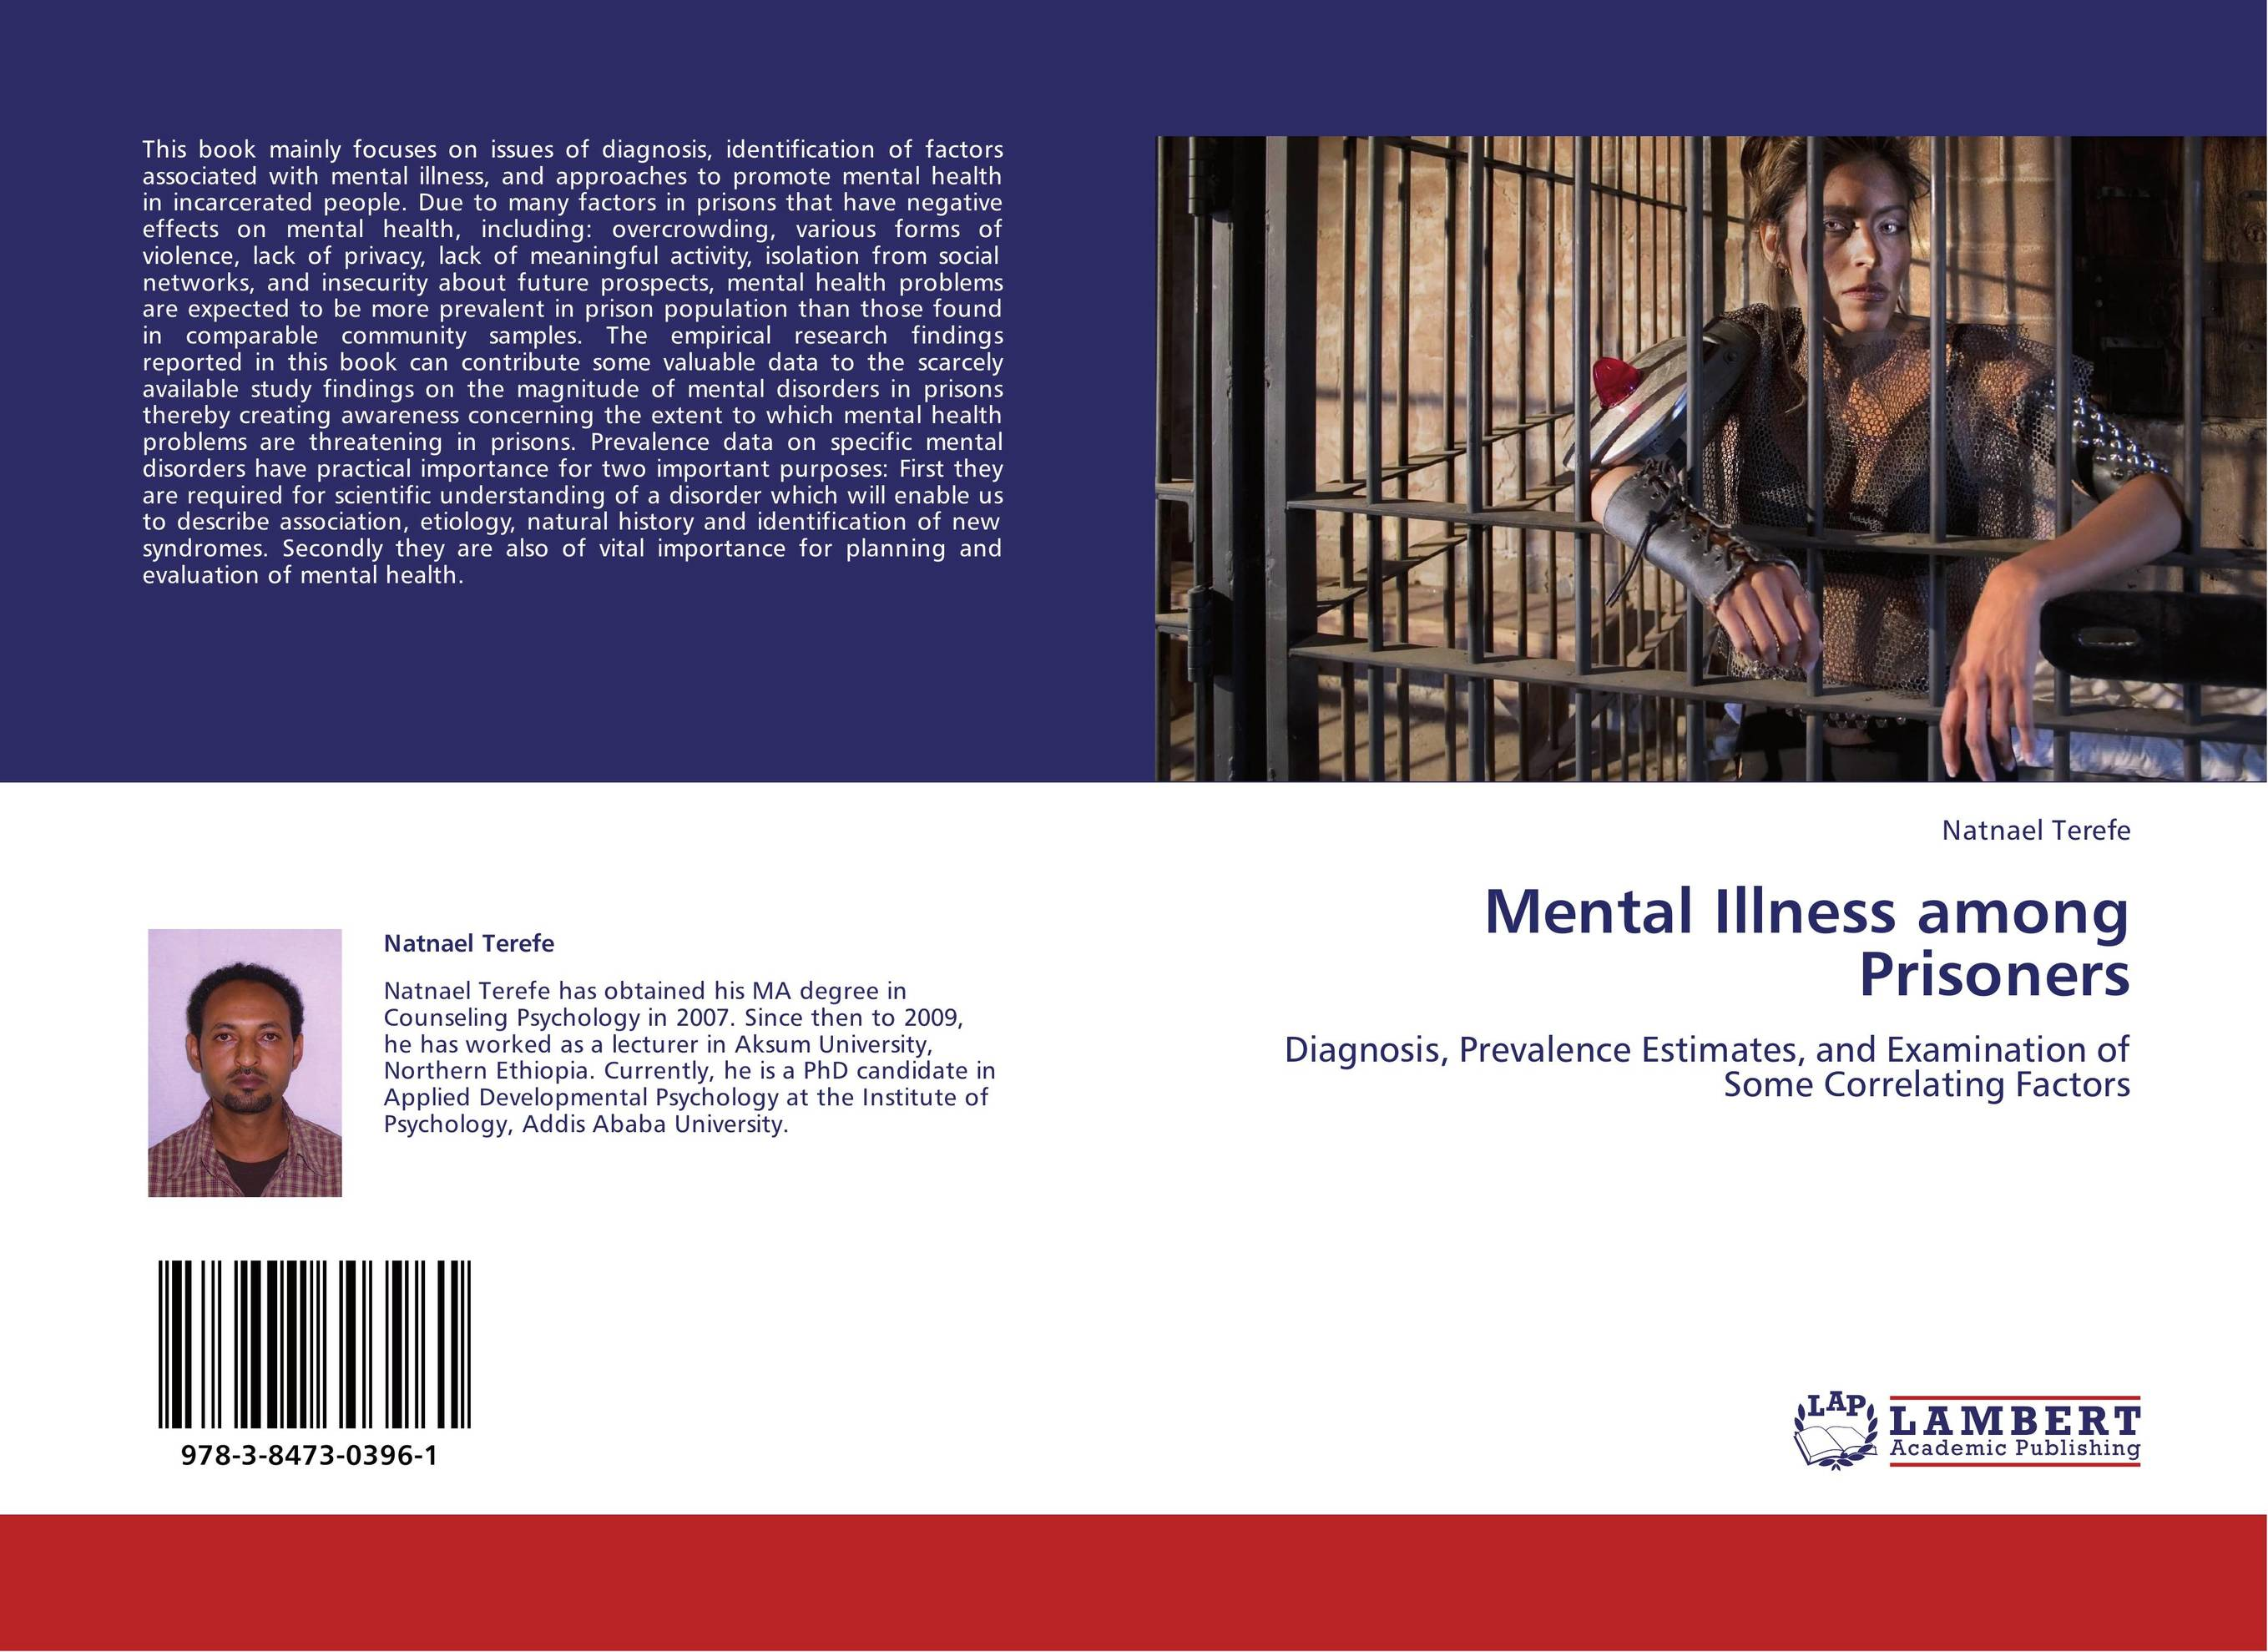 examining the impact of mentoring desistance among prisoners criminology essay As marisa silvestri and chris crowther-dowey acknowledge, second wave feminism in the 1970s and 1980s had a huge impact on criminology and criminal justice and resulted in a plethora of groundbreaking criminological texts.